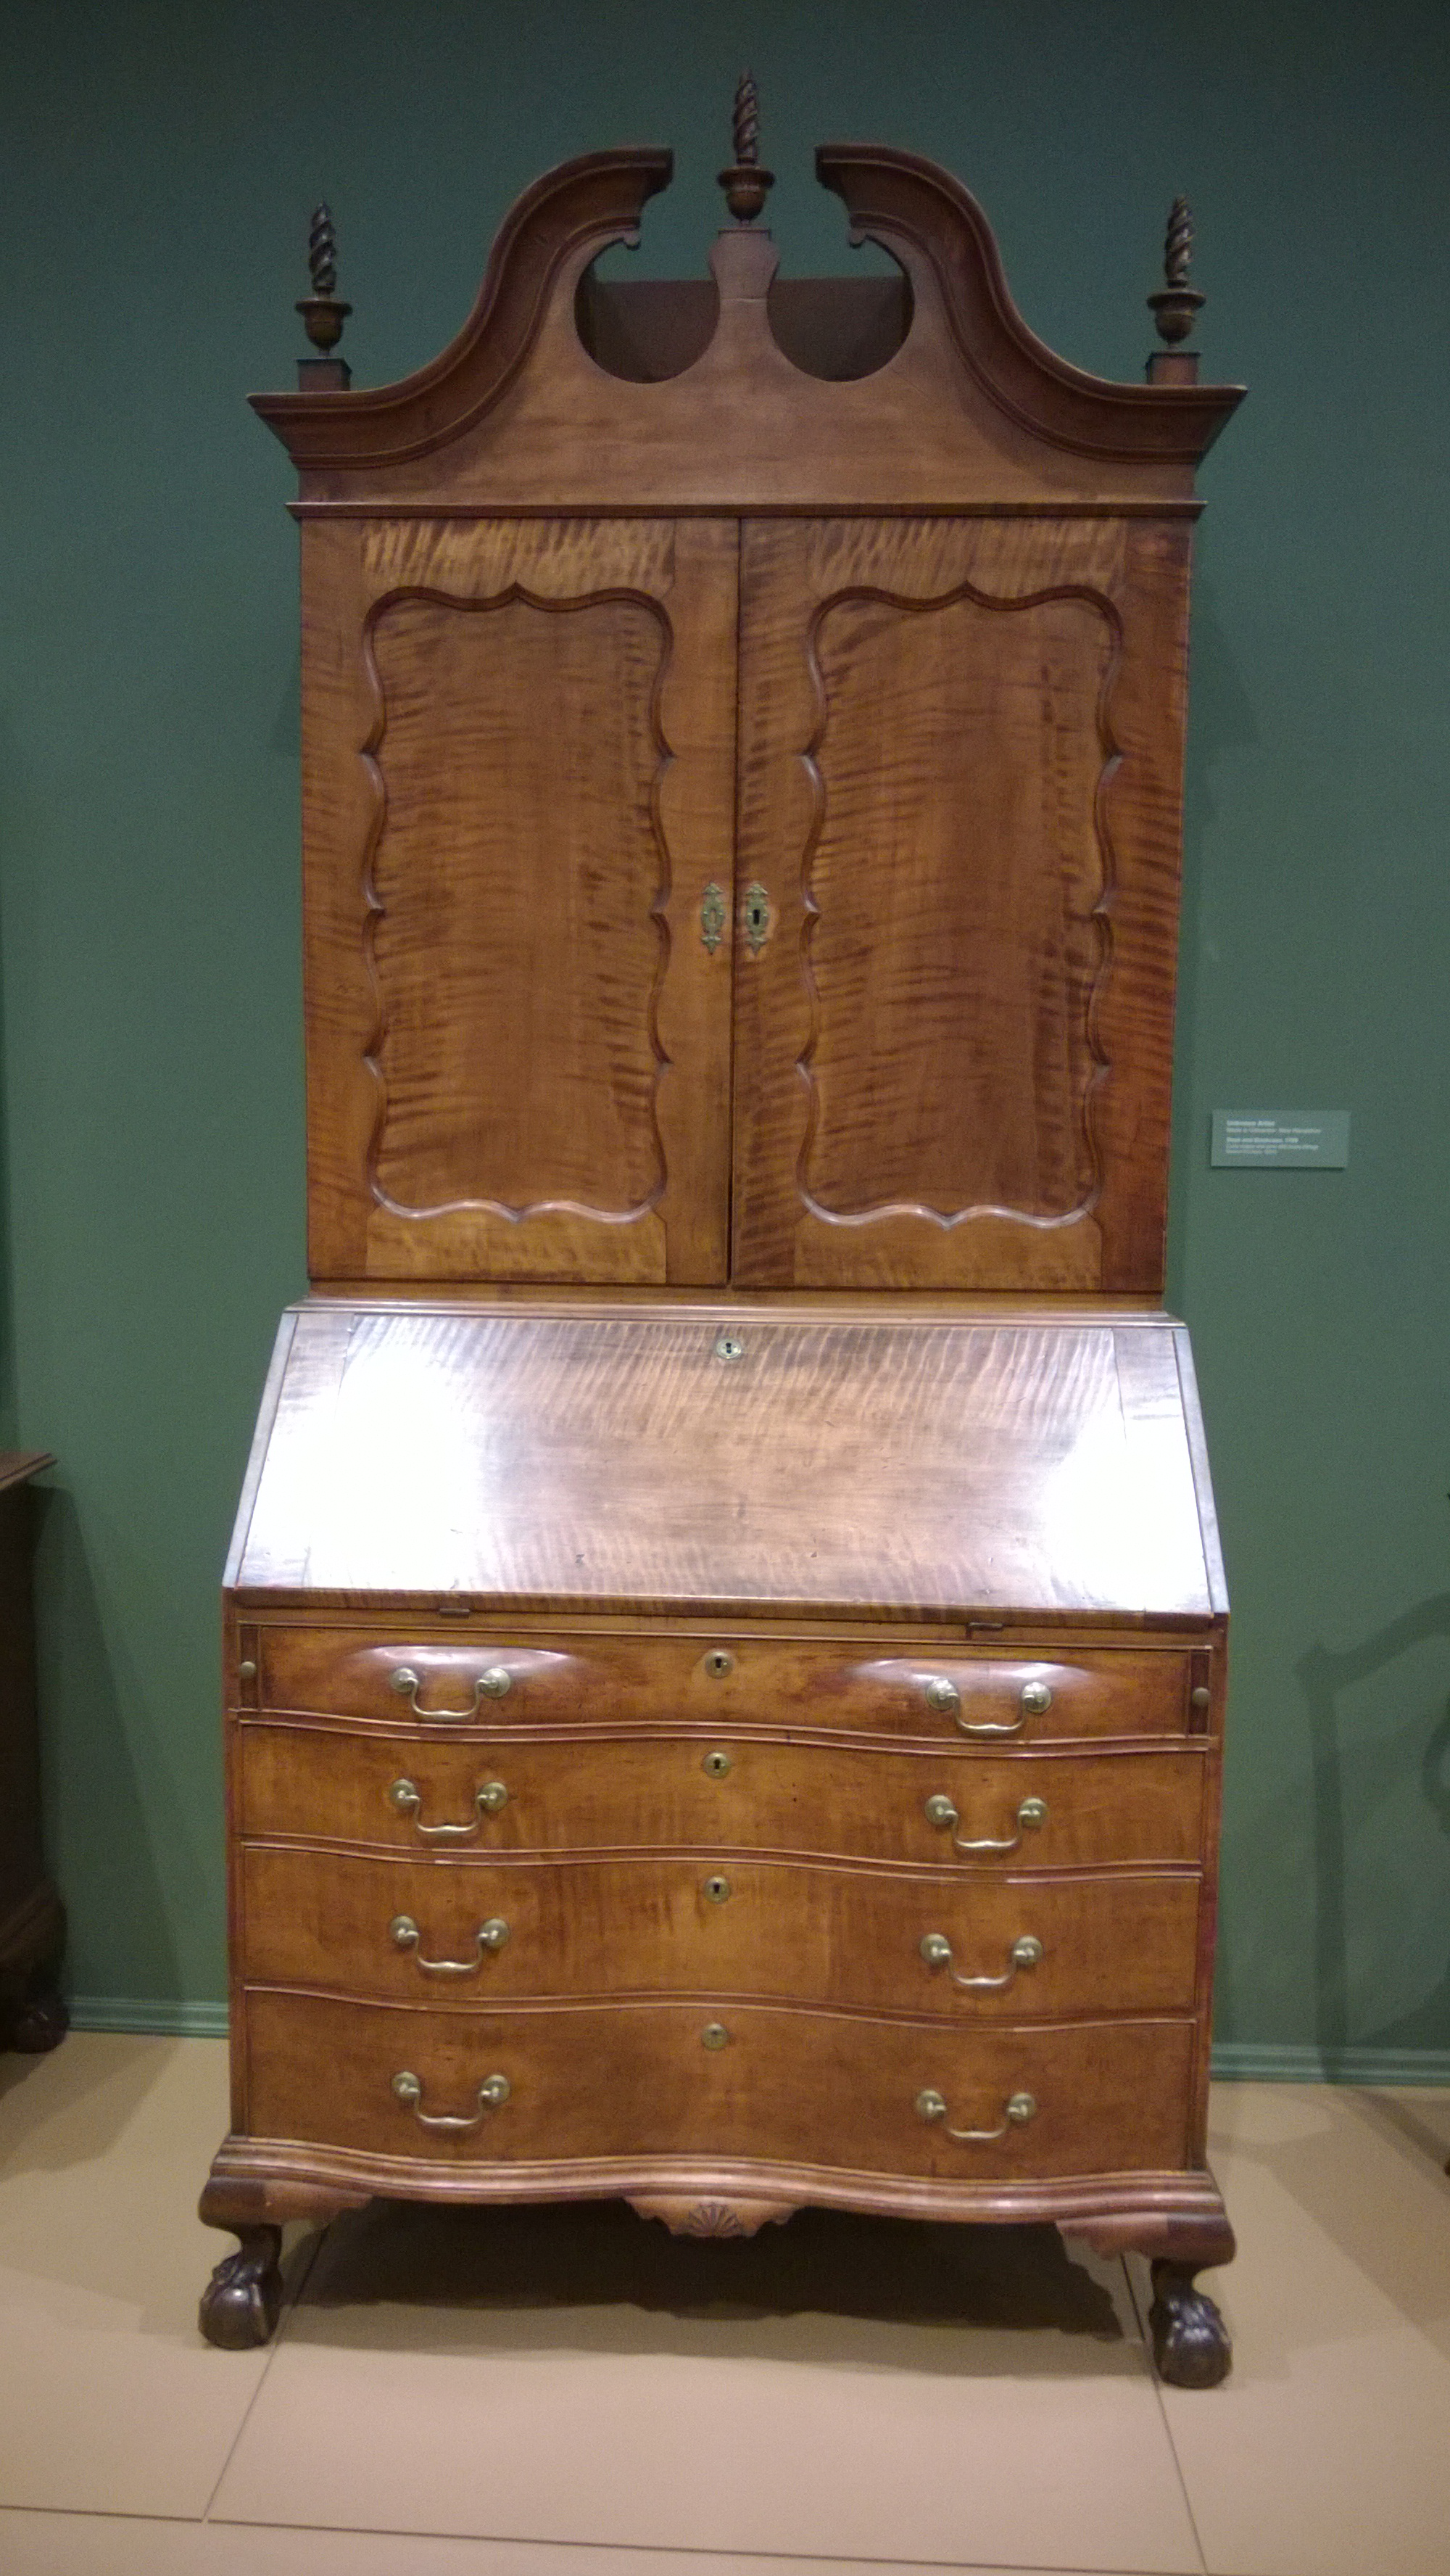 File:Furniture In The Currier Museum Of Art WP 20180527 073